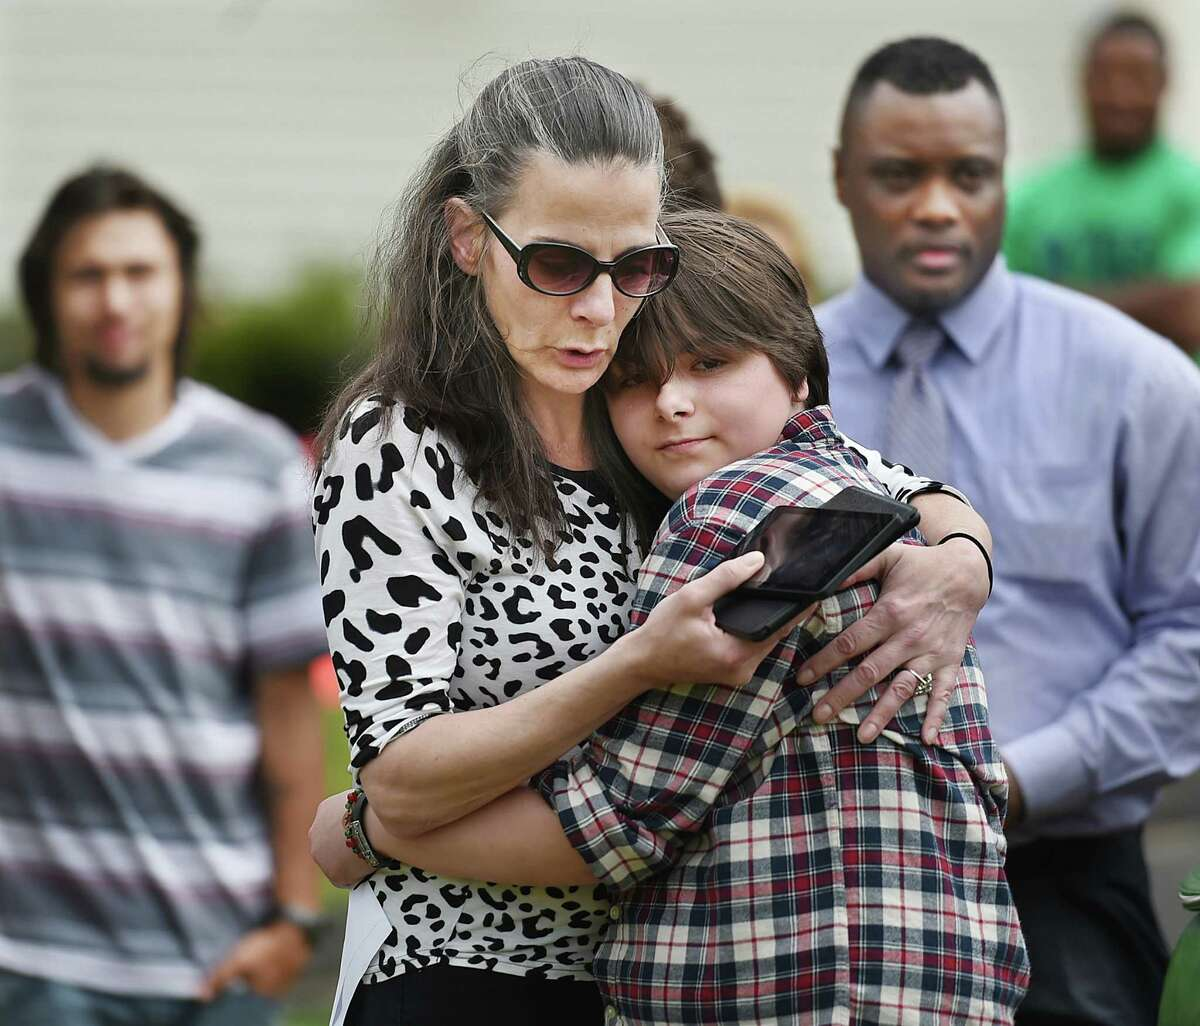 Theresa Torony, 18, and her mother, Alicia Buechner, of Bridgeport embrace following Torony's speech, Wednesday, May 18, 2016, at the main campus of Boys & Girls Village at 528 Wheelers Farms Road in Milford. The BGV held a ceremonial ground-breaking for a new facility after receiving a $2.16 million state grant. Torony admitted her childhood was filled with anxiety and depression but was happy to announce she is stable and plans to attend Sacred Heart University in the fall to earn a degree in social work. For 73 years, Boys & Girls Village, Inc. has provided behavioral health, permanency planning services and education for at-risk youth and their families from 50 communities within the state. (Catherine Avalone/New Haven Register)